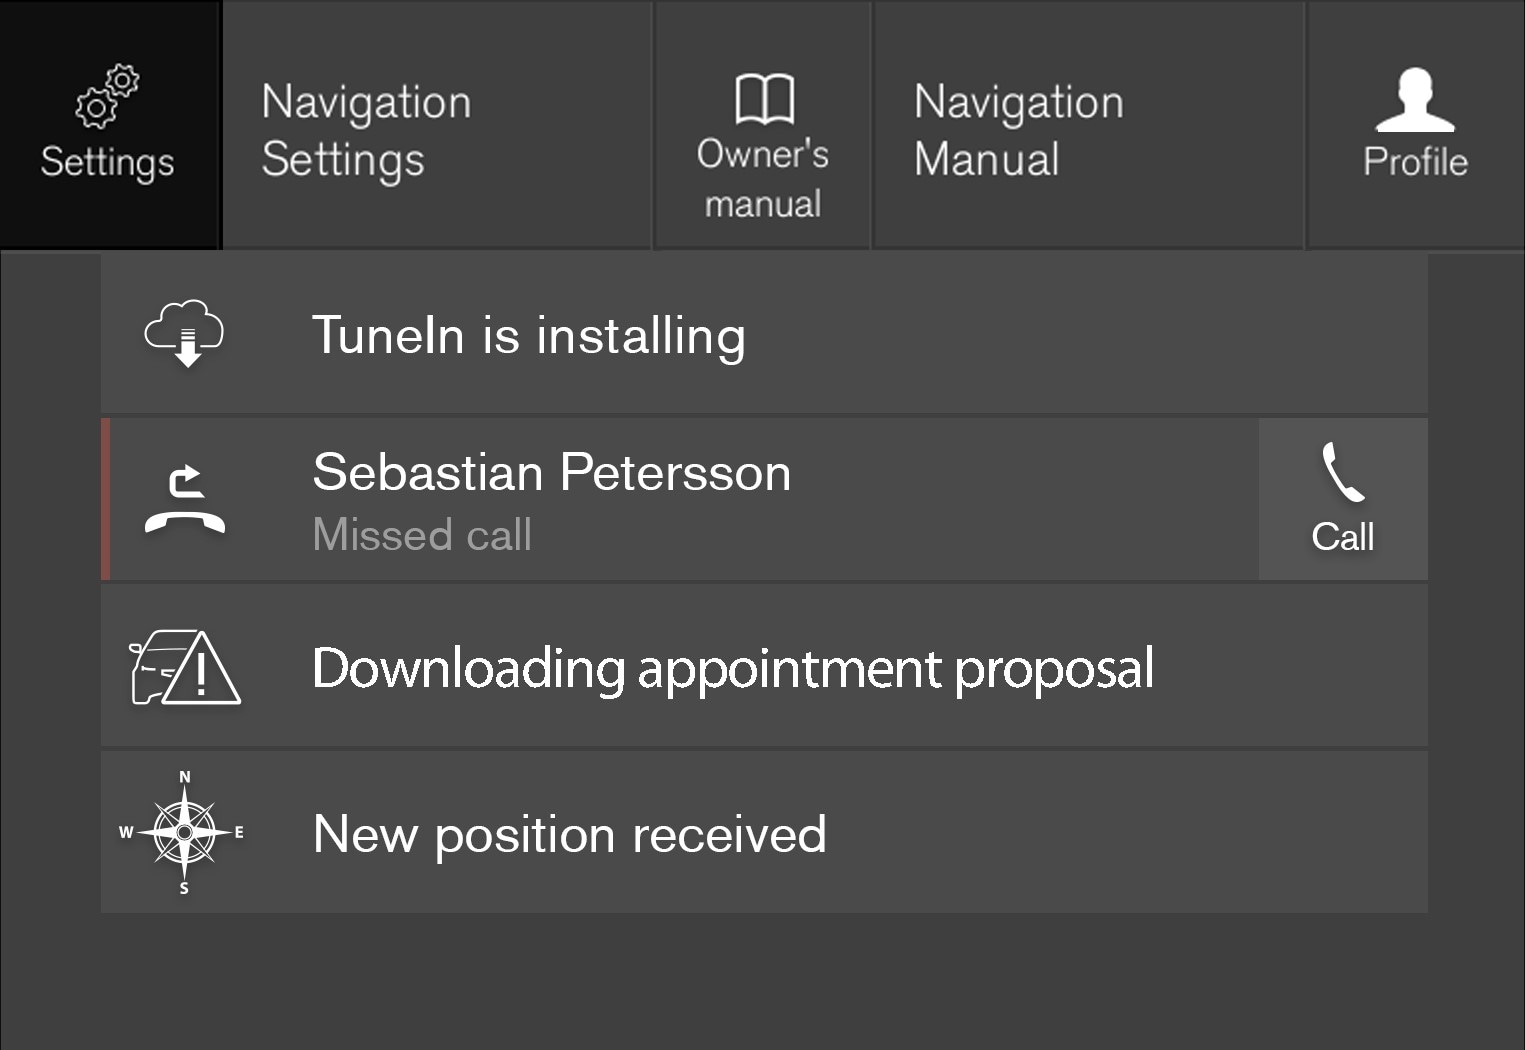 P6-17w46-Settings menu highlighted in top view